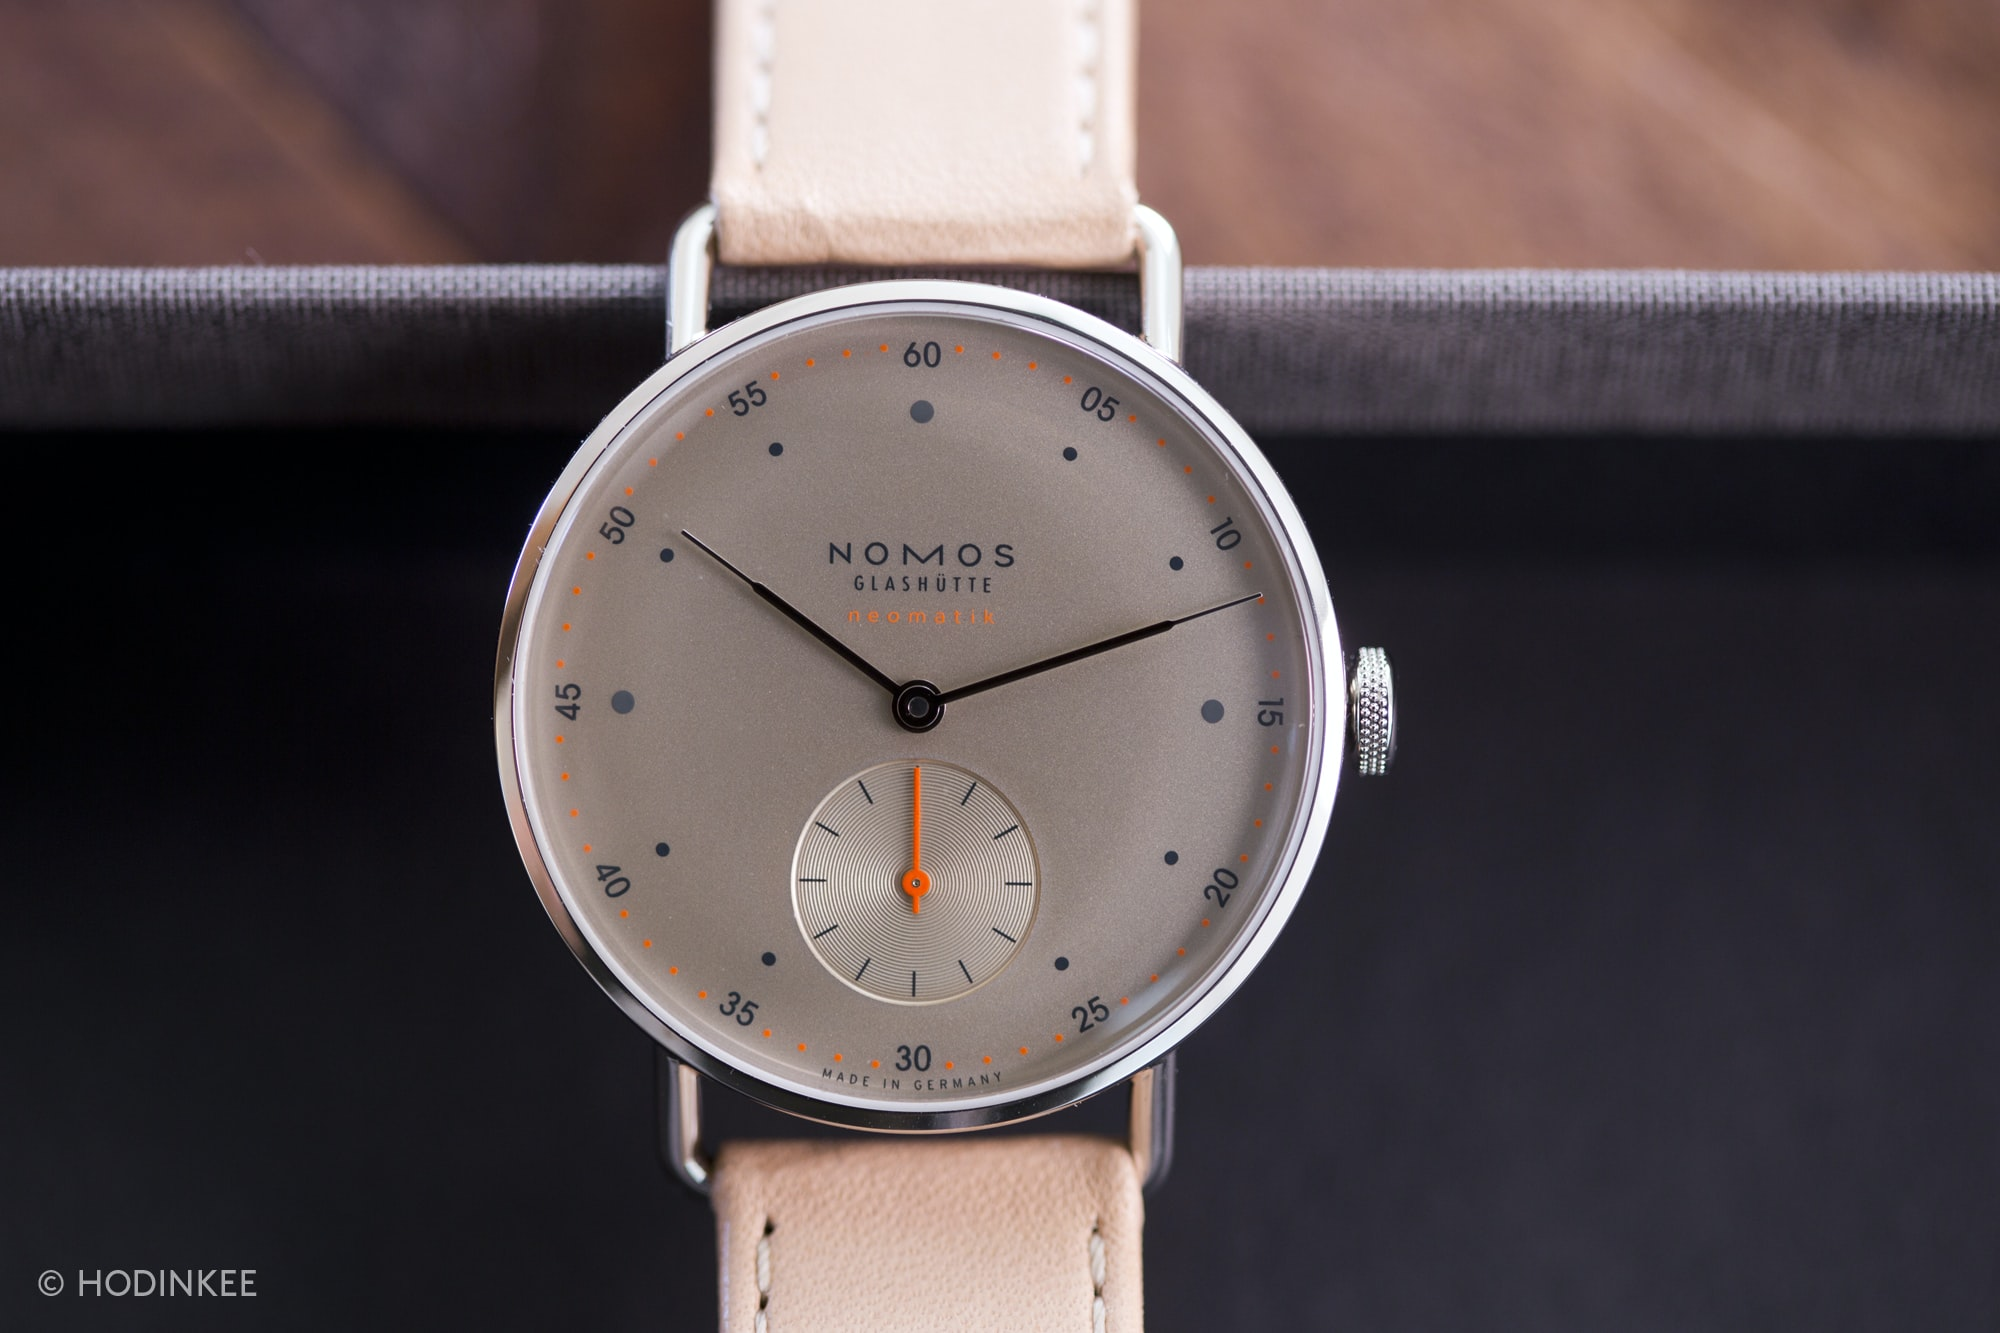 Nomos Neomatik Champagner The Eve's Watch Awards, The First Ever Dedicated Ladies' Watch Awards, Took Place Last Weekend The Eve's Watch Awards, The First Ever Dedicated Ladies' Watch Awards, Took Place Last Weekend nomos neomatik 05